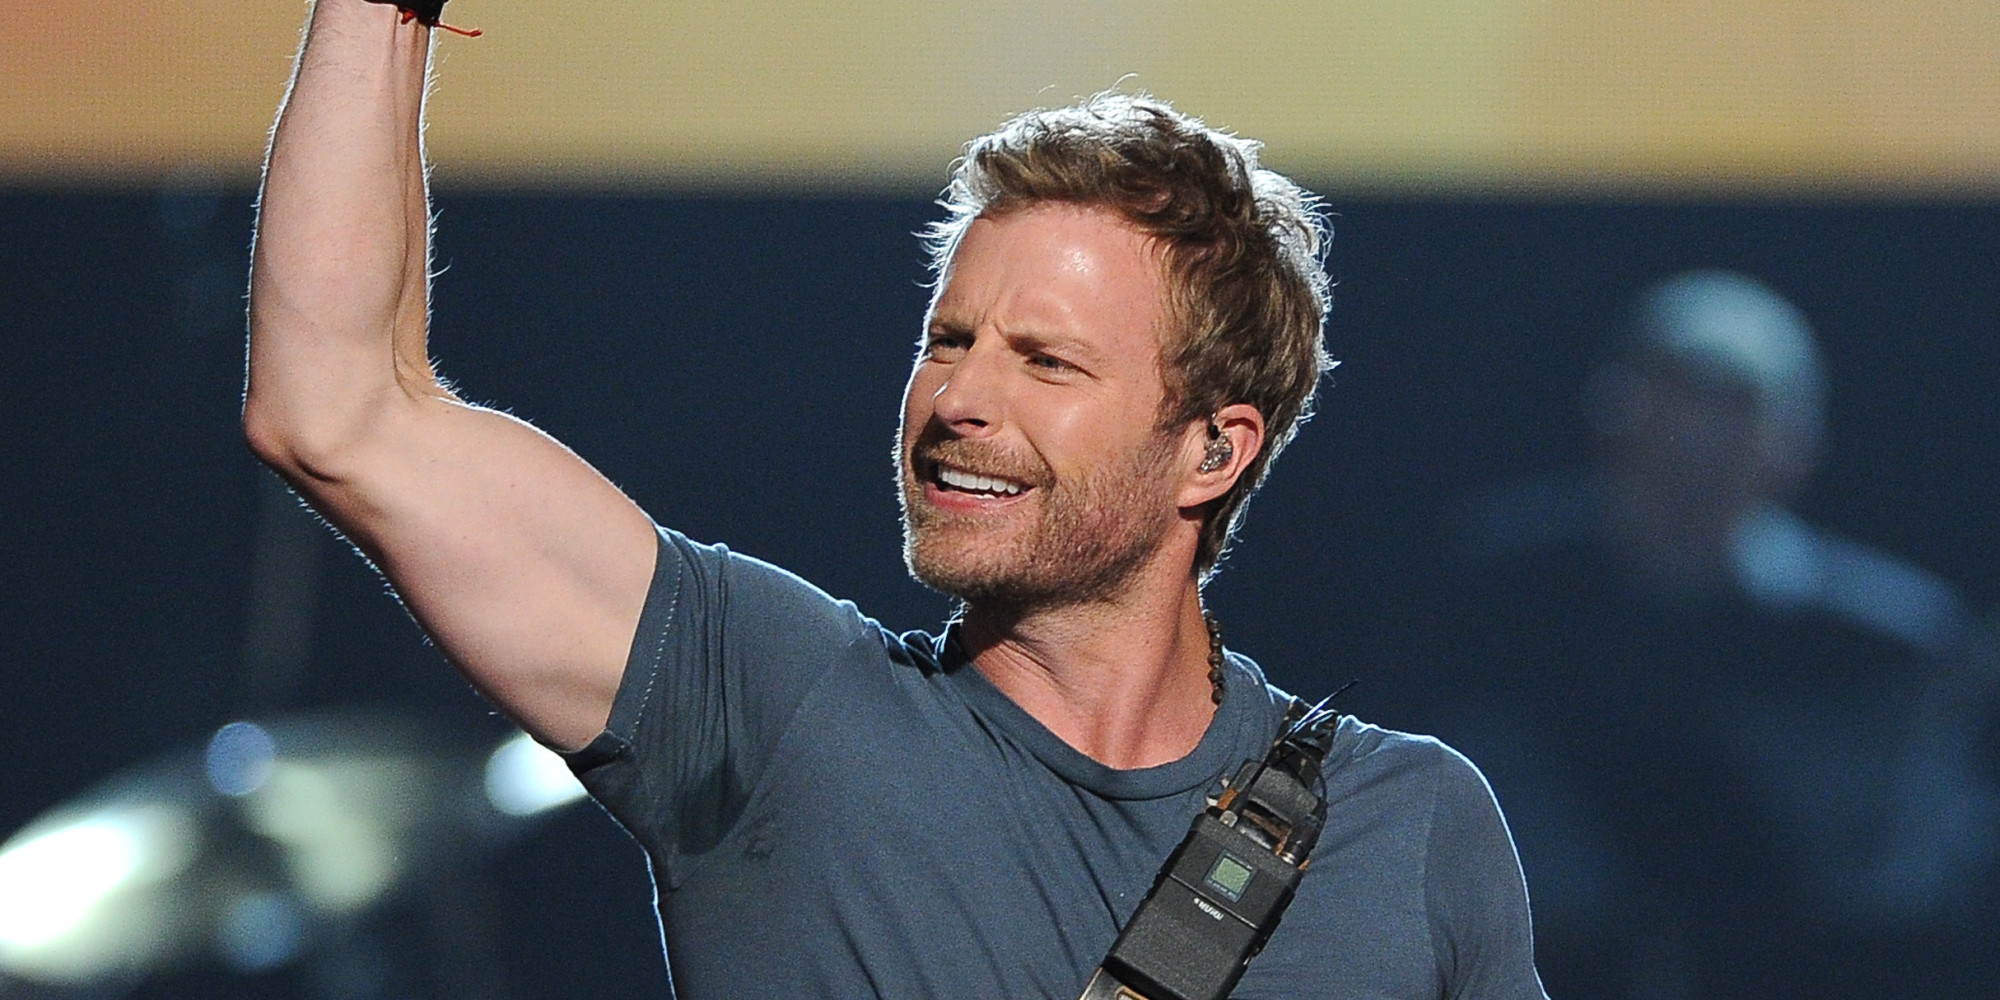 Dierks Bentley Is Hoping His Lucky Number Wins Him Some